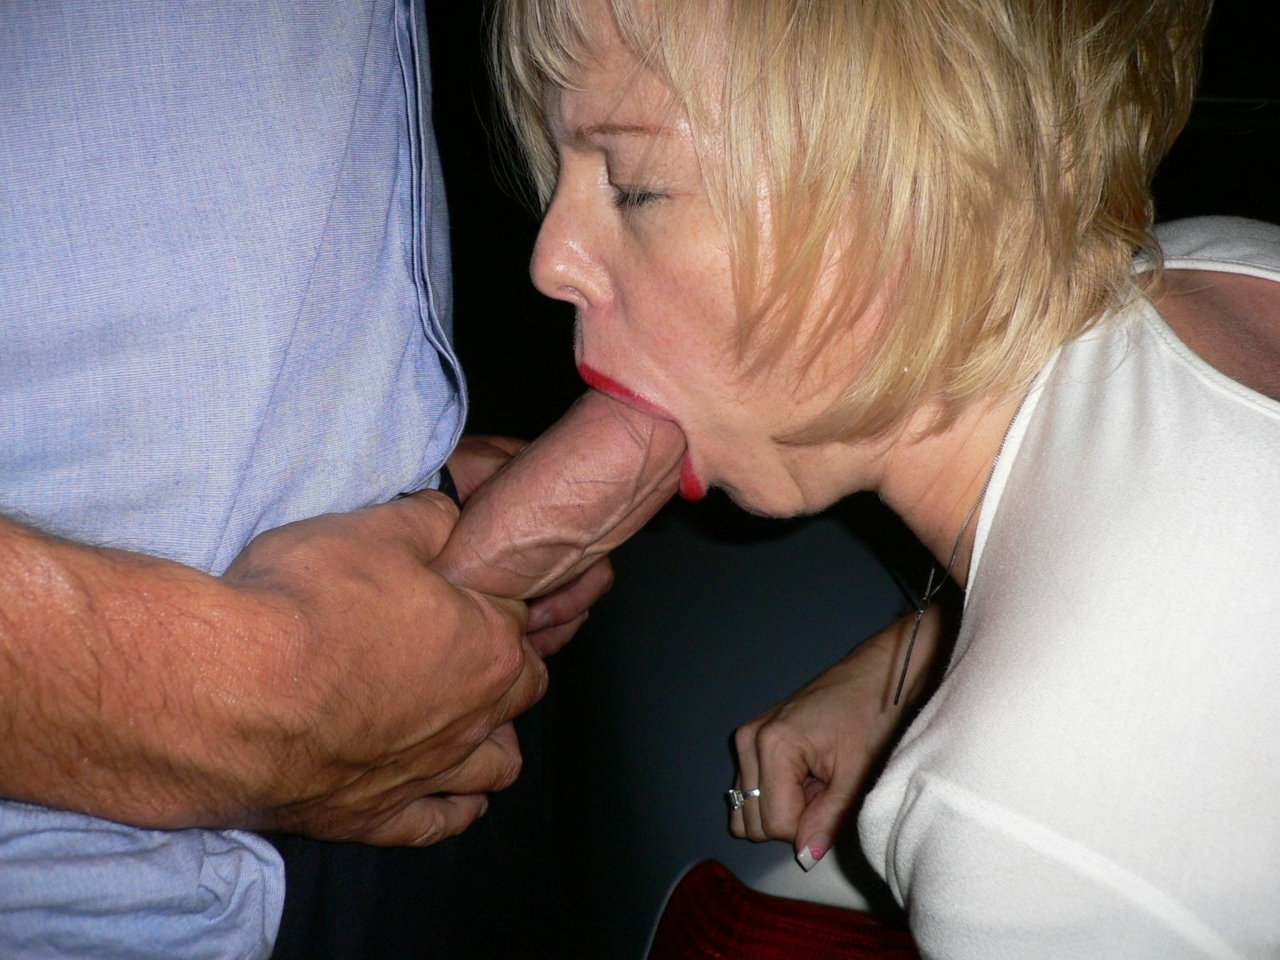 She want wife oral sex